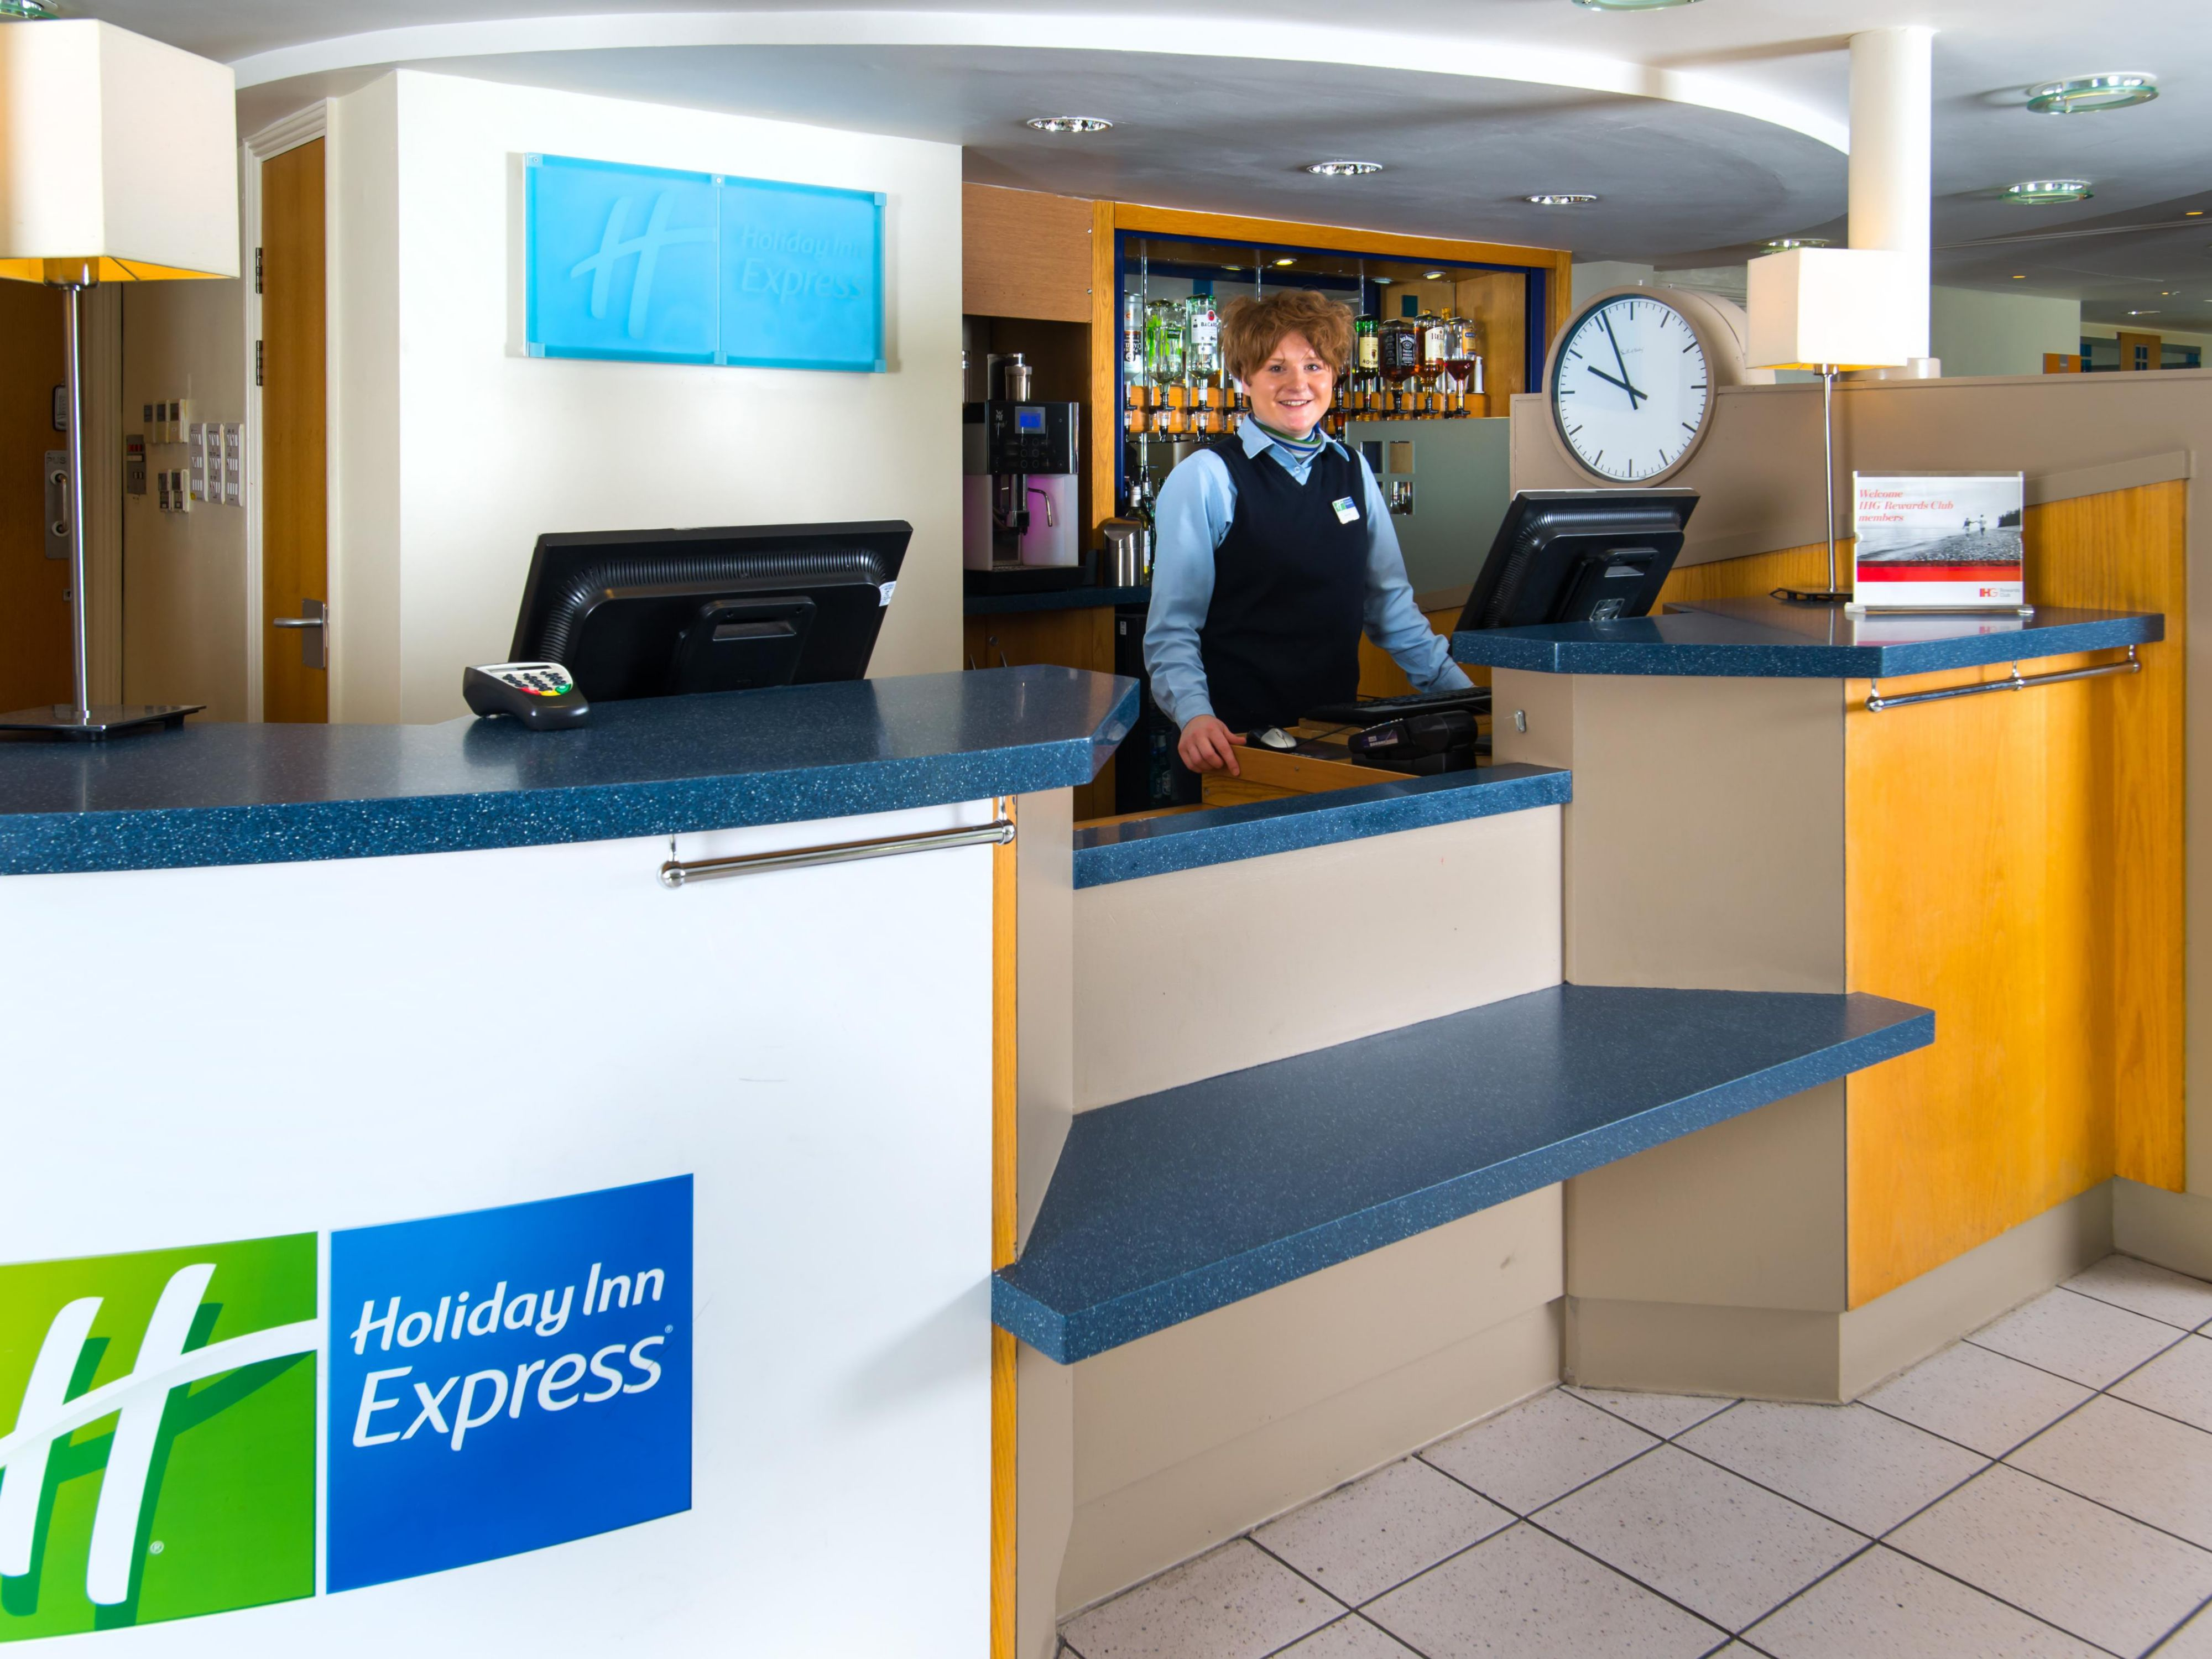 A warm welcome awaits at our Holiday Inn Express hotel in Stafford